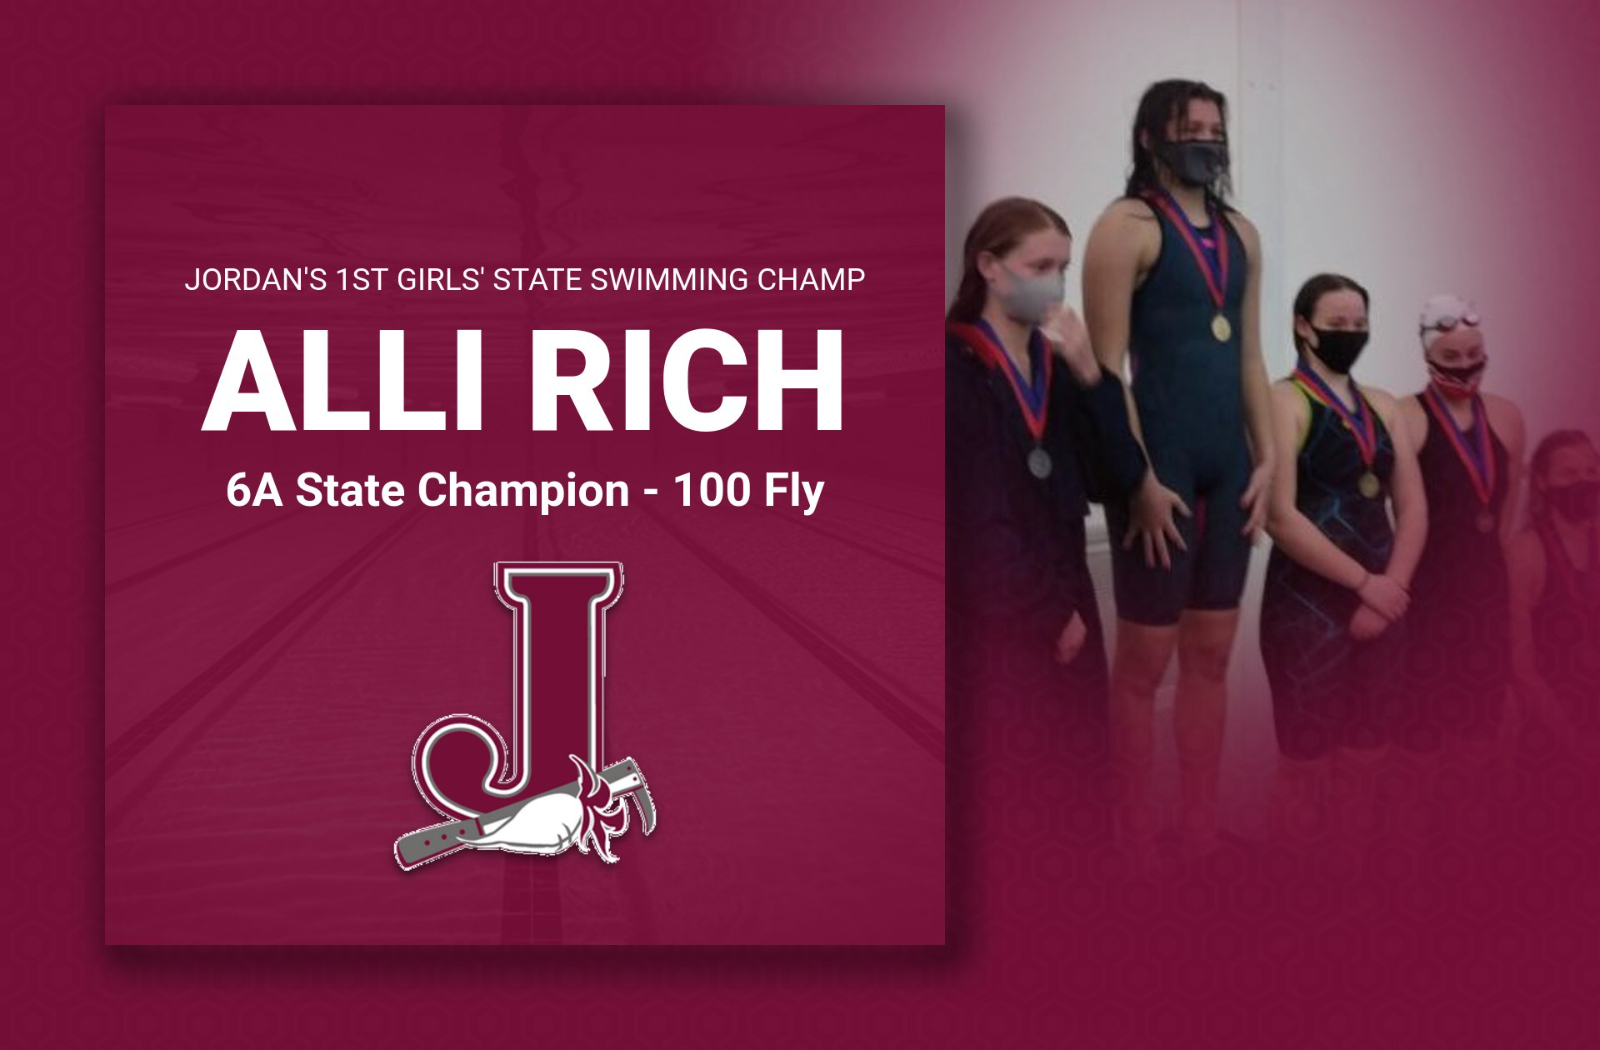 Girls Swimming: Alli Rich Takes 6A State Championship in 100 Fly